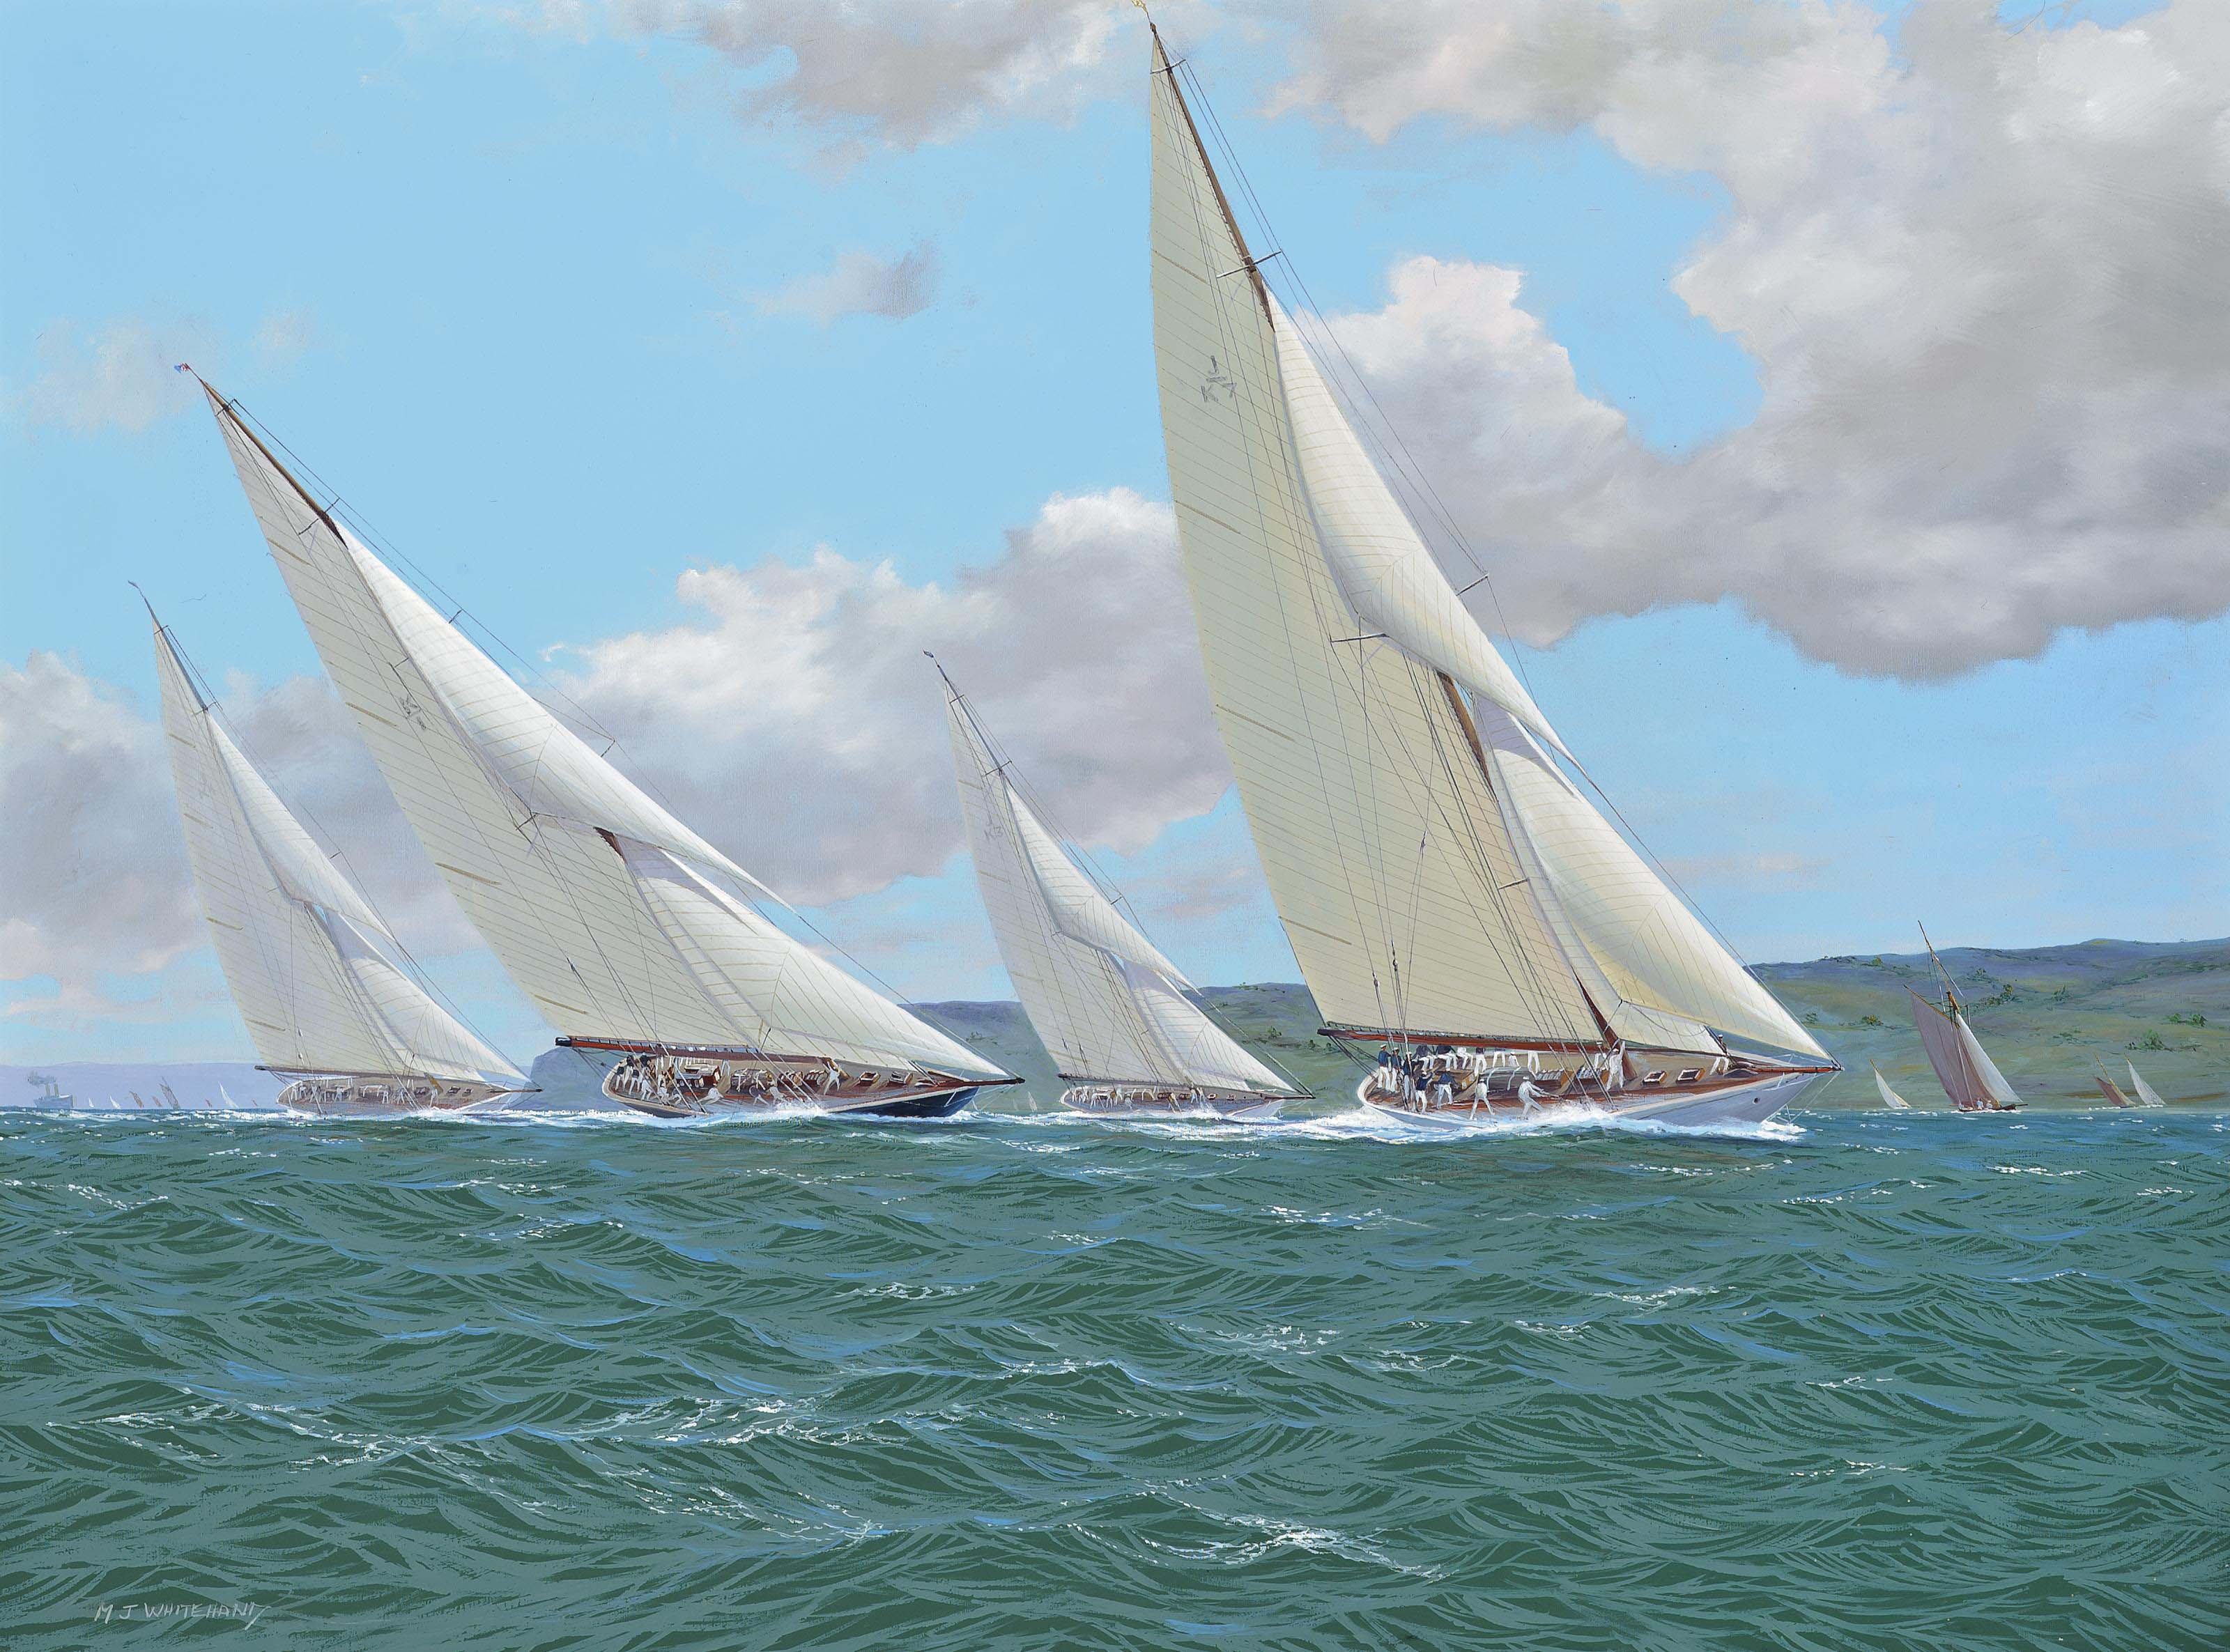 Four adversaries, Britannia, White Heather, Candida and Cambria, battling it out in the Solent